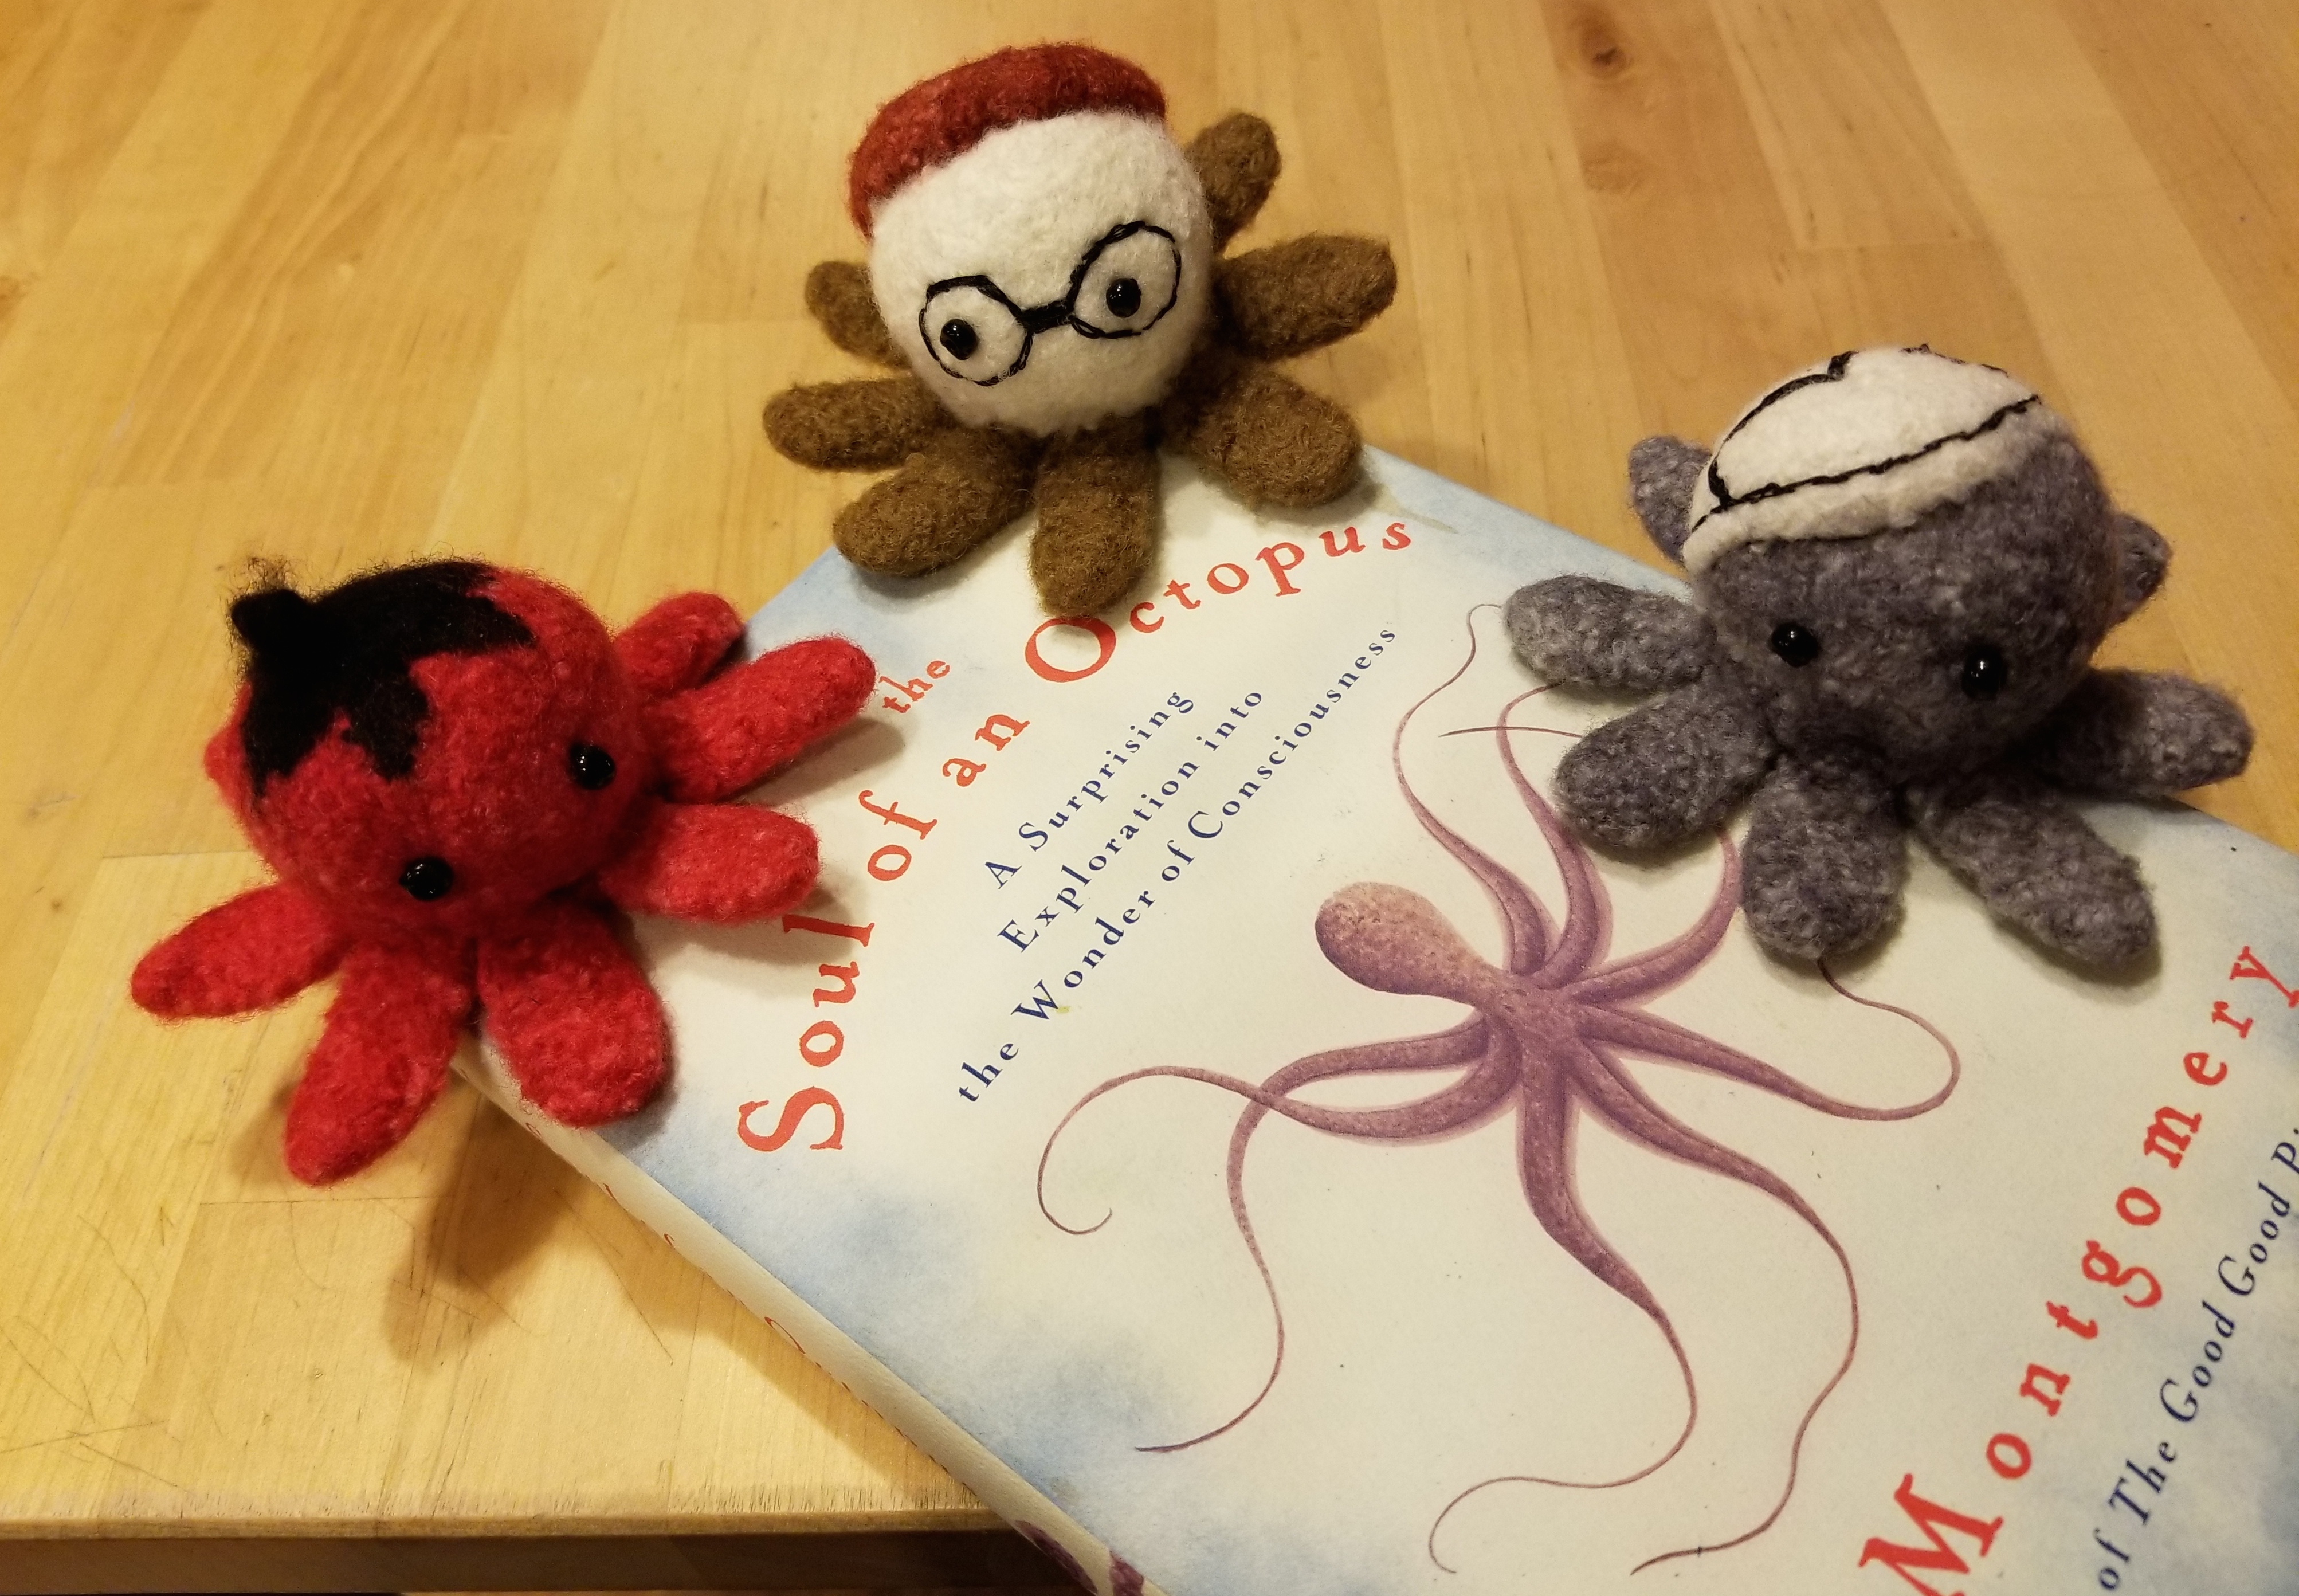 soaif octopods front view with book